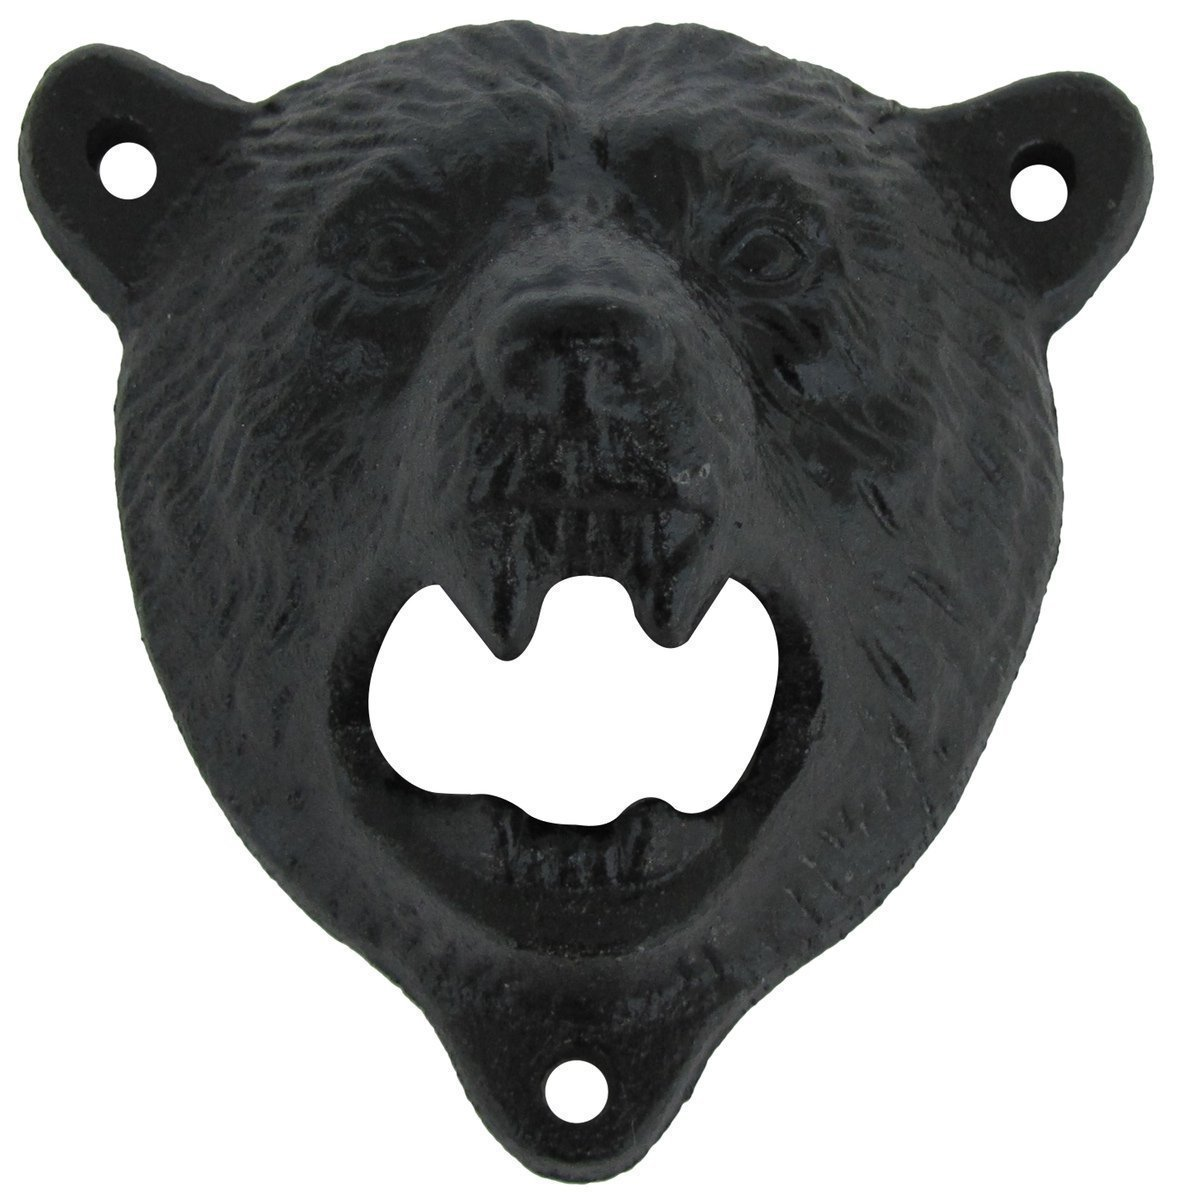 Cast Iron Wall Mount Grizzly Bear Teeth Bite Bottle Opener (Black) 0